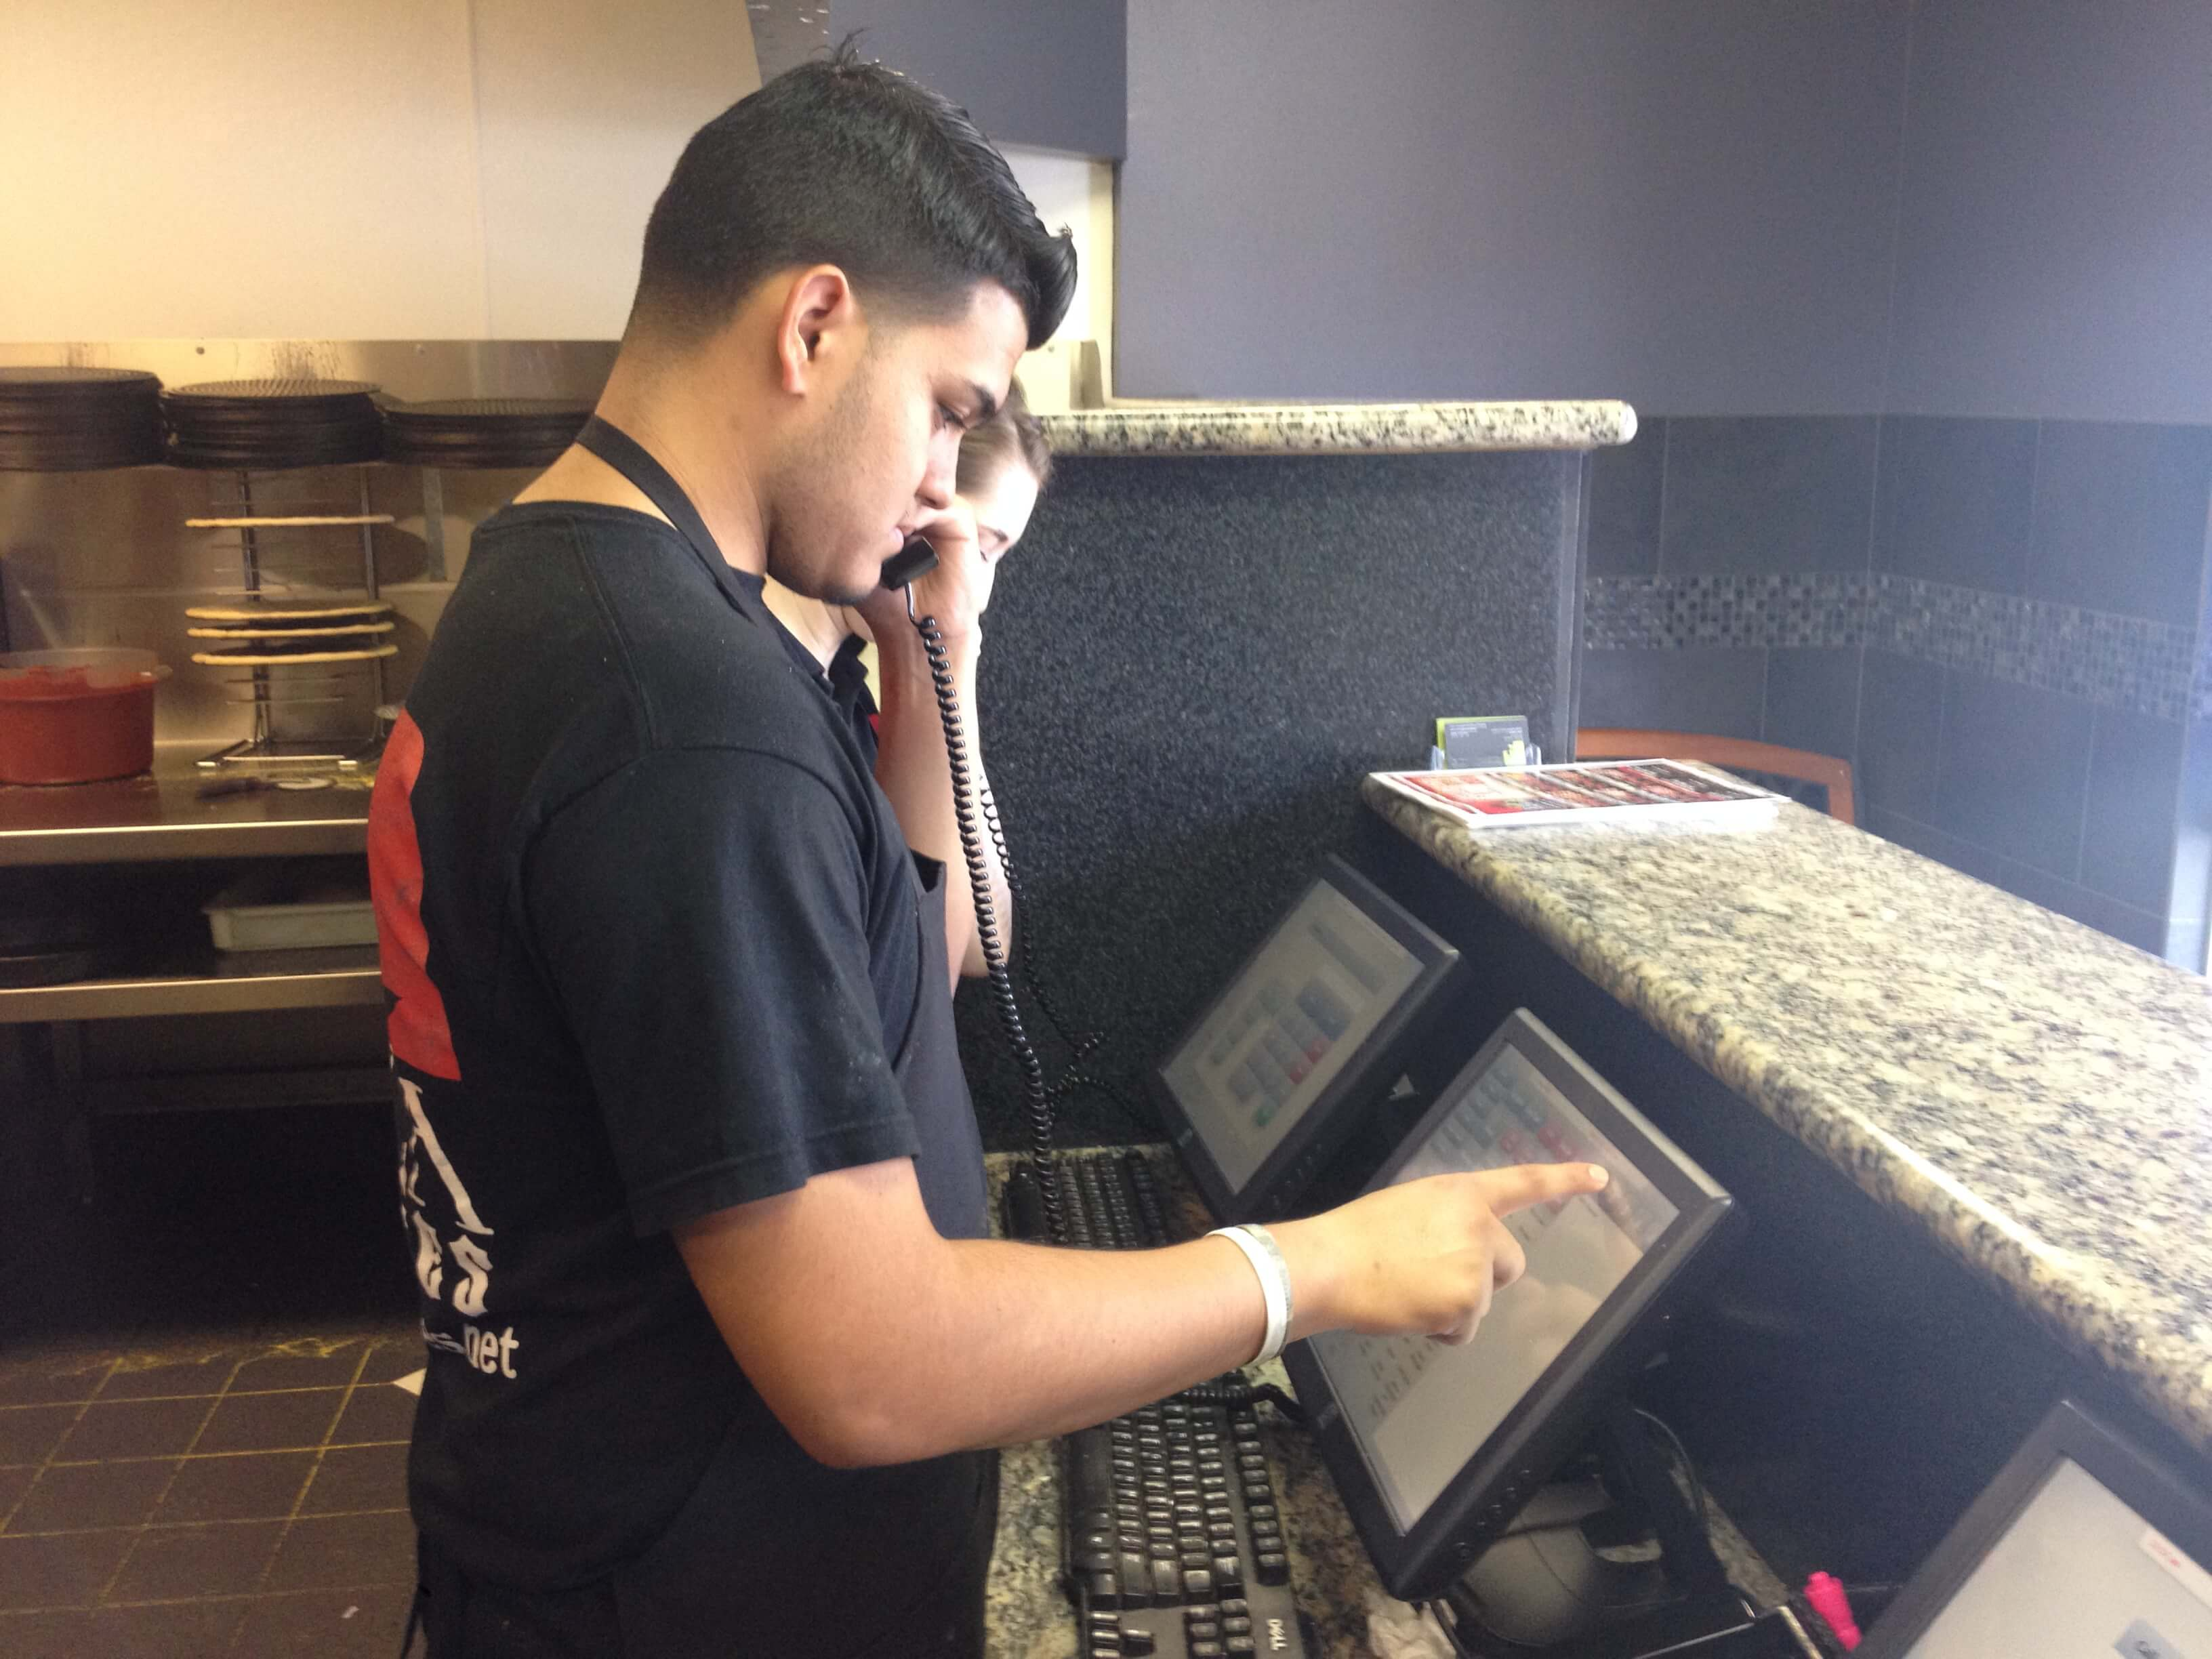 A Pizza Pirate employee entering a phone ordering into the POS